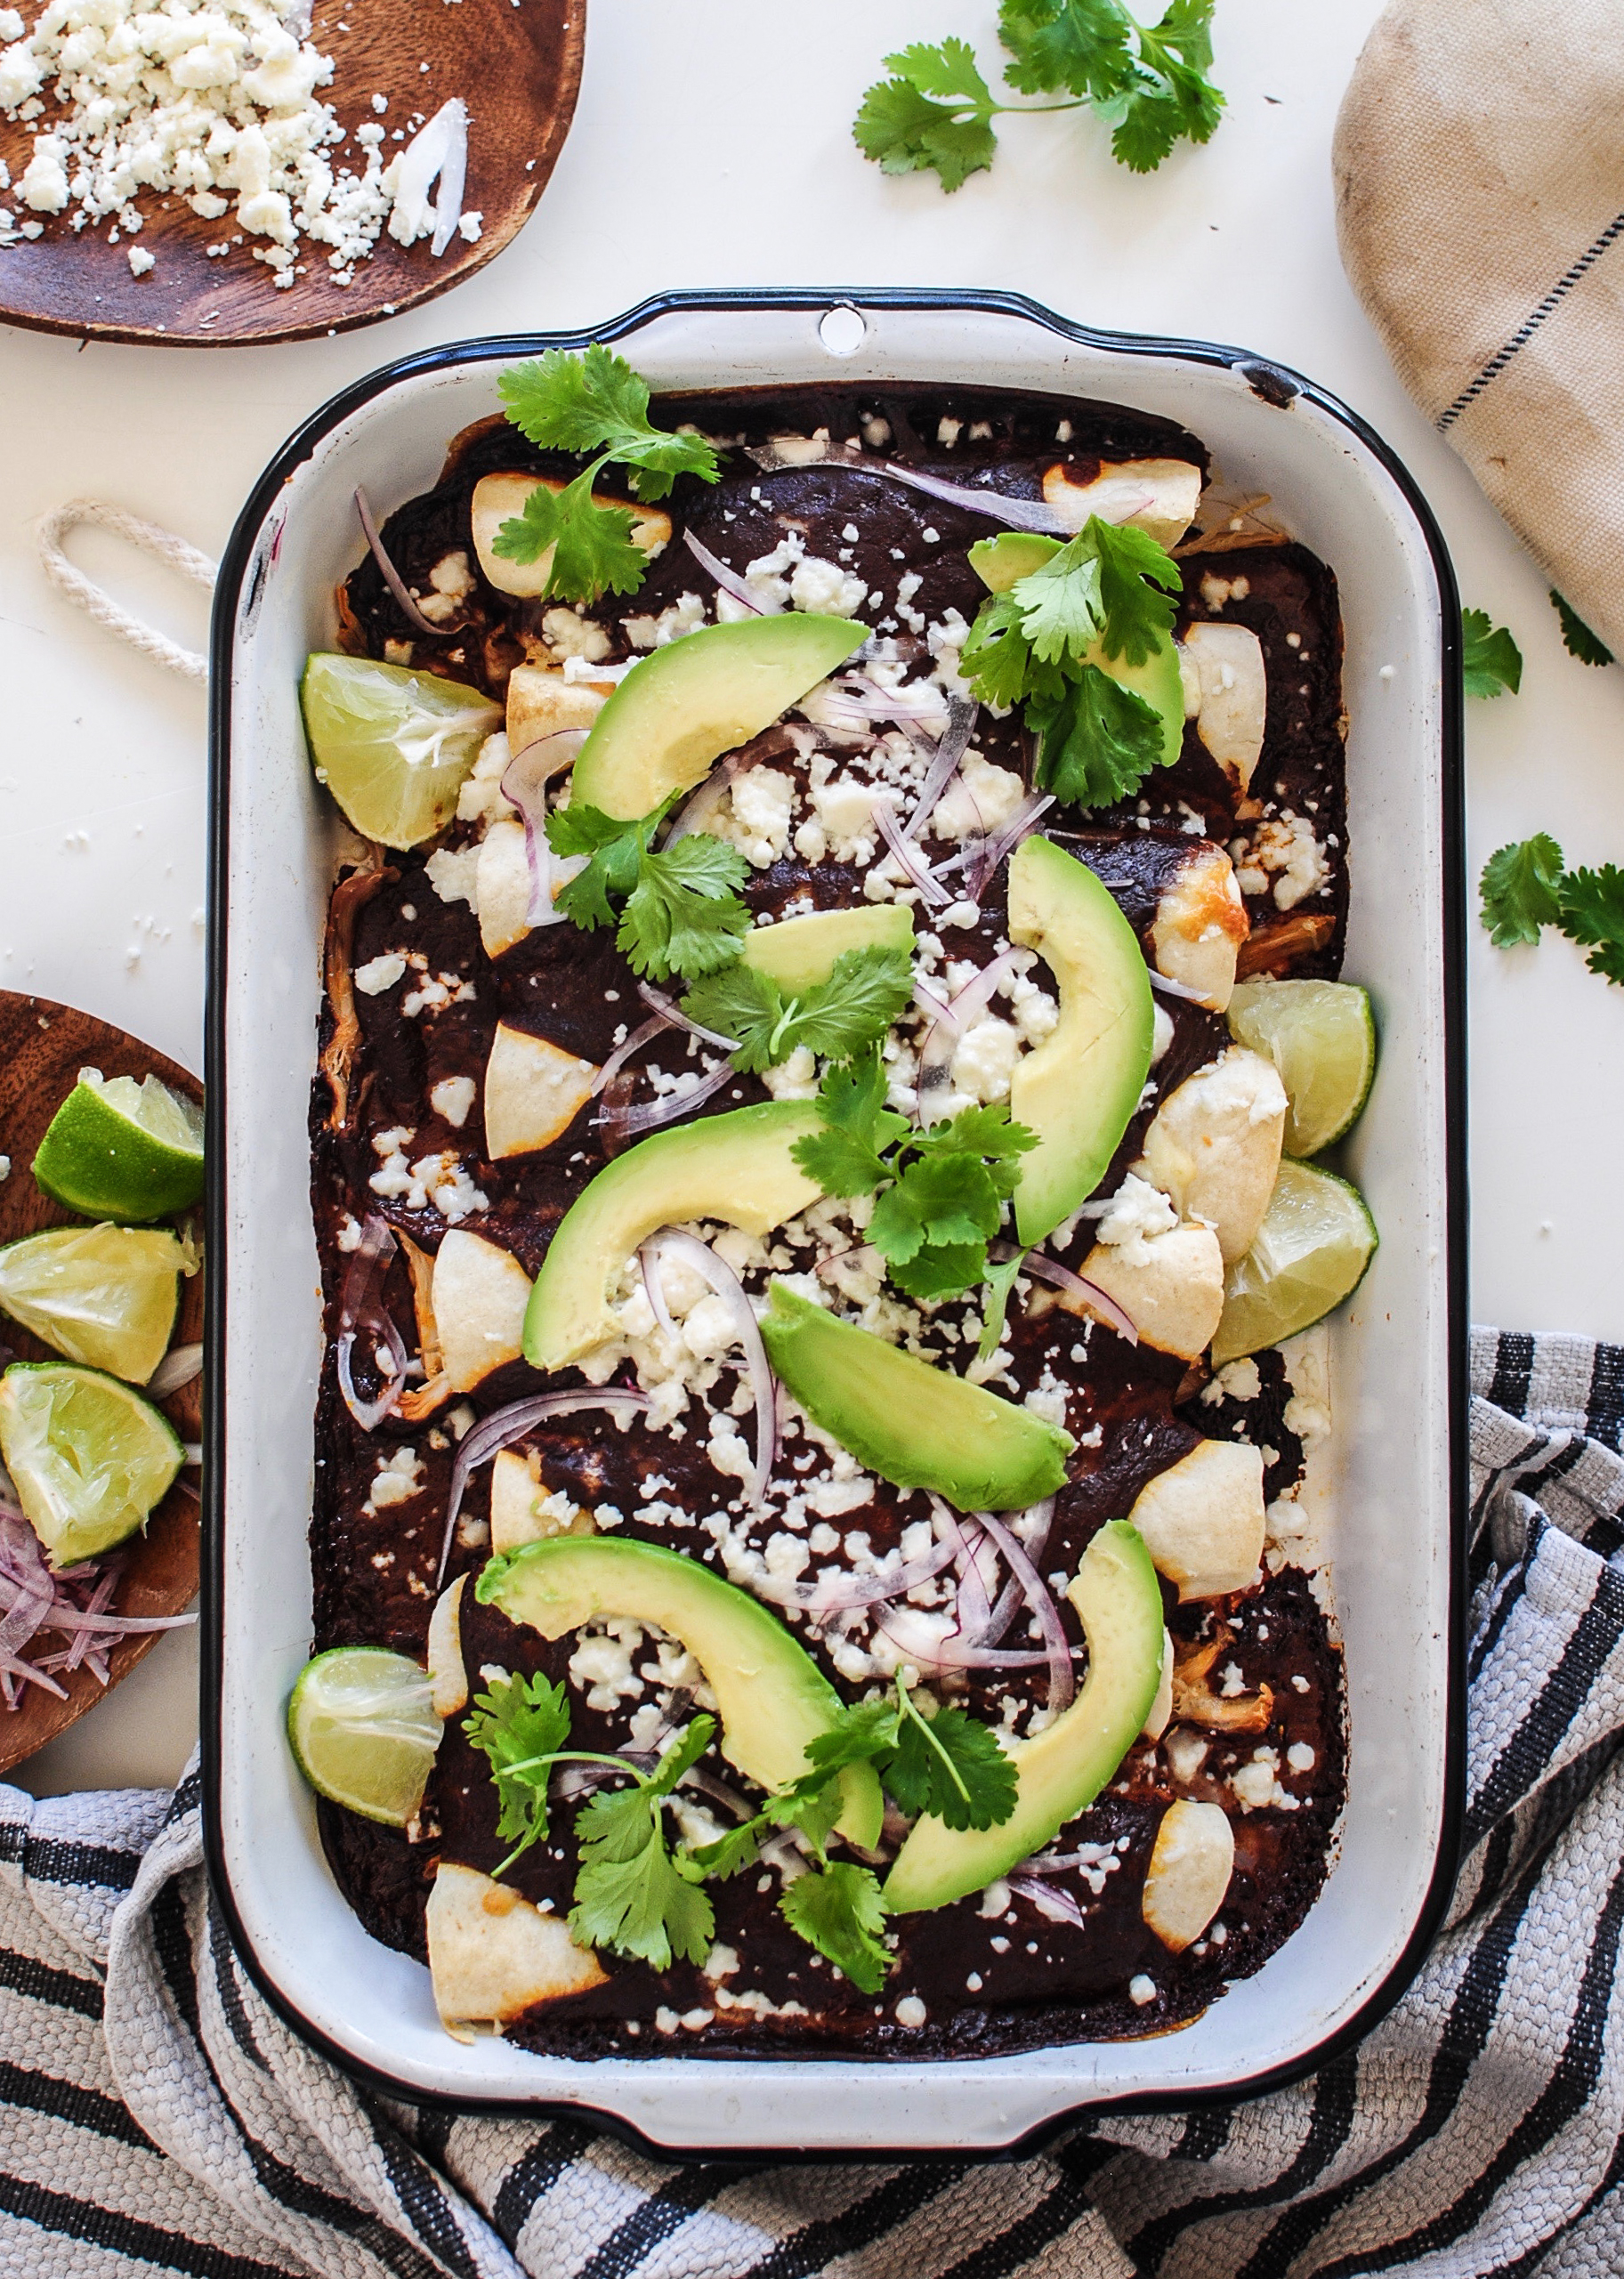 Chicken enchiladas with a ridiculously easy mole sauce bev cooks chicken enchiladas with a ridiculously easy mole sauce bev cooks forumfinder Image collections